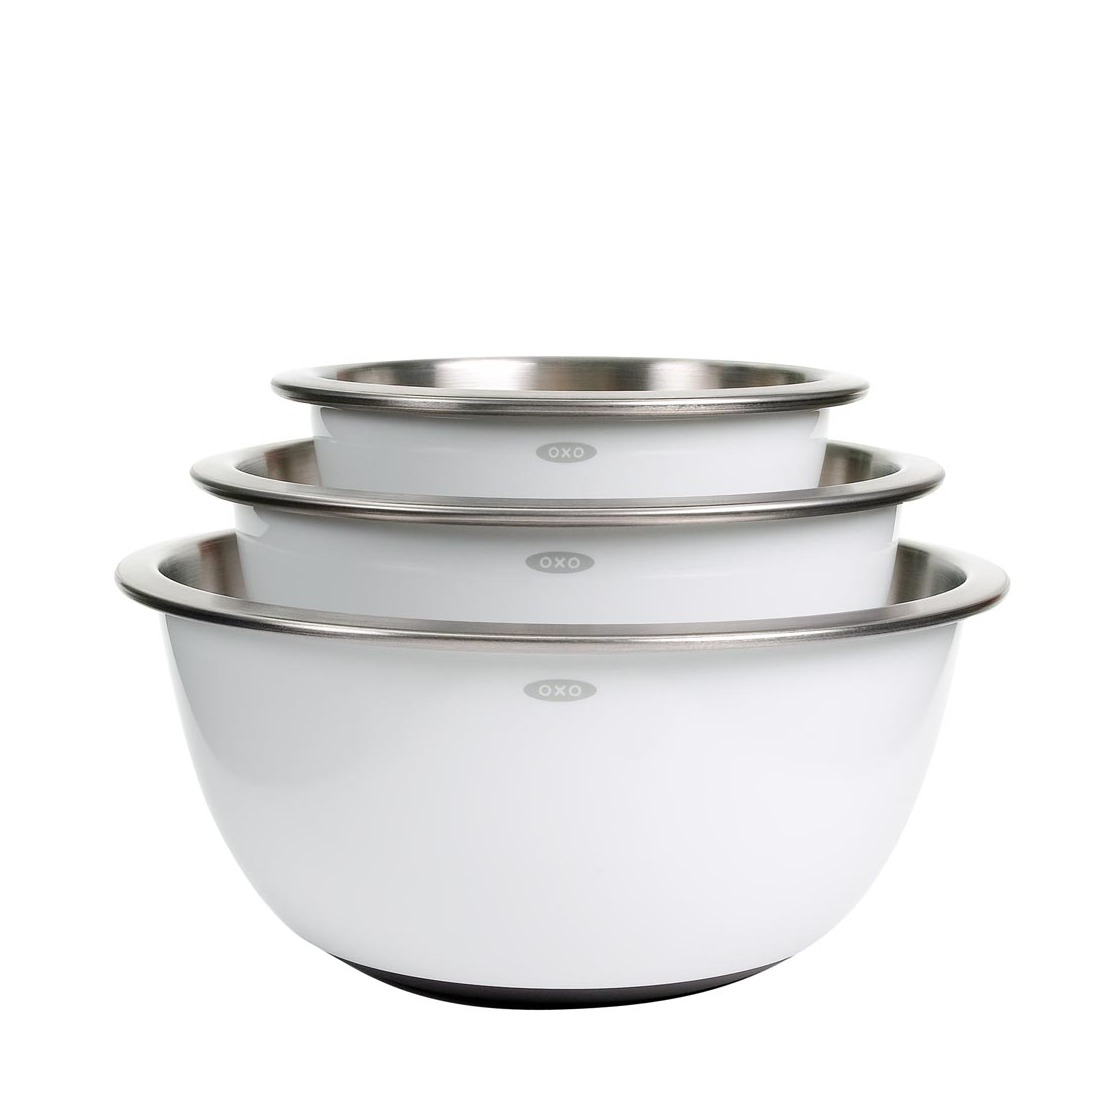 3-Piece Stainless Steel Mixing Bowl Set - White